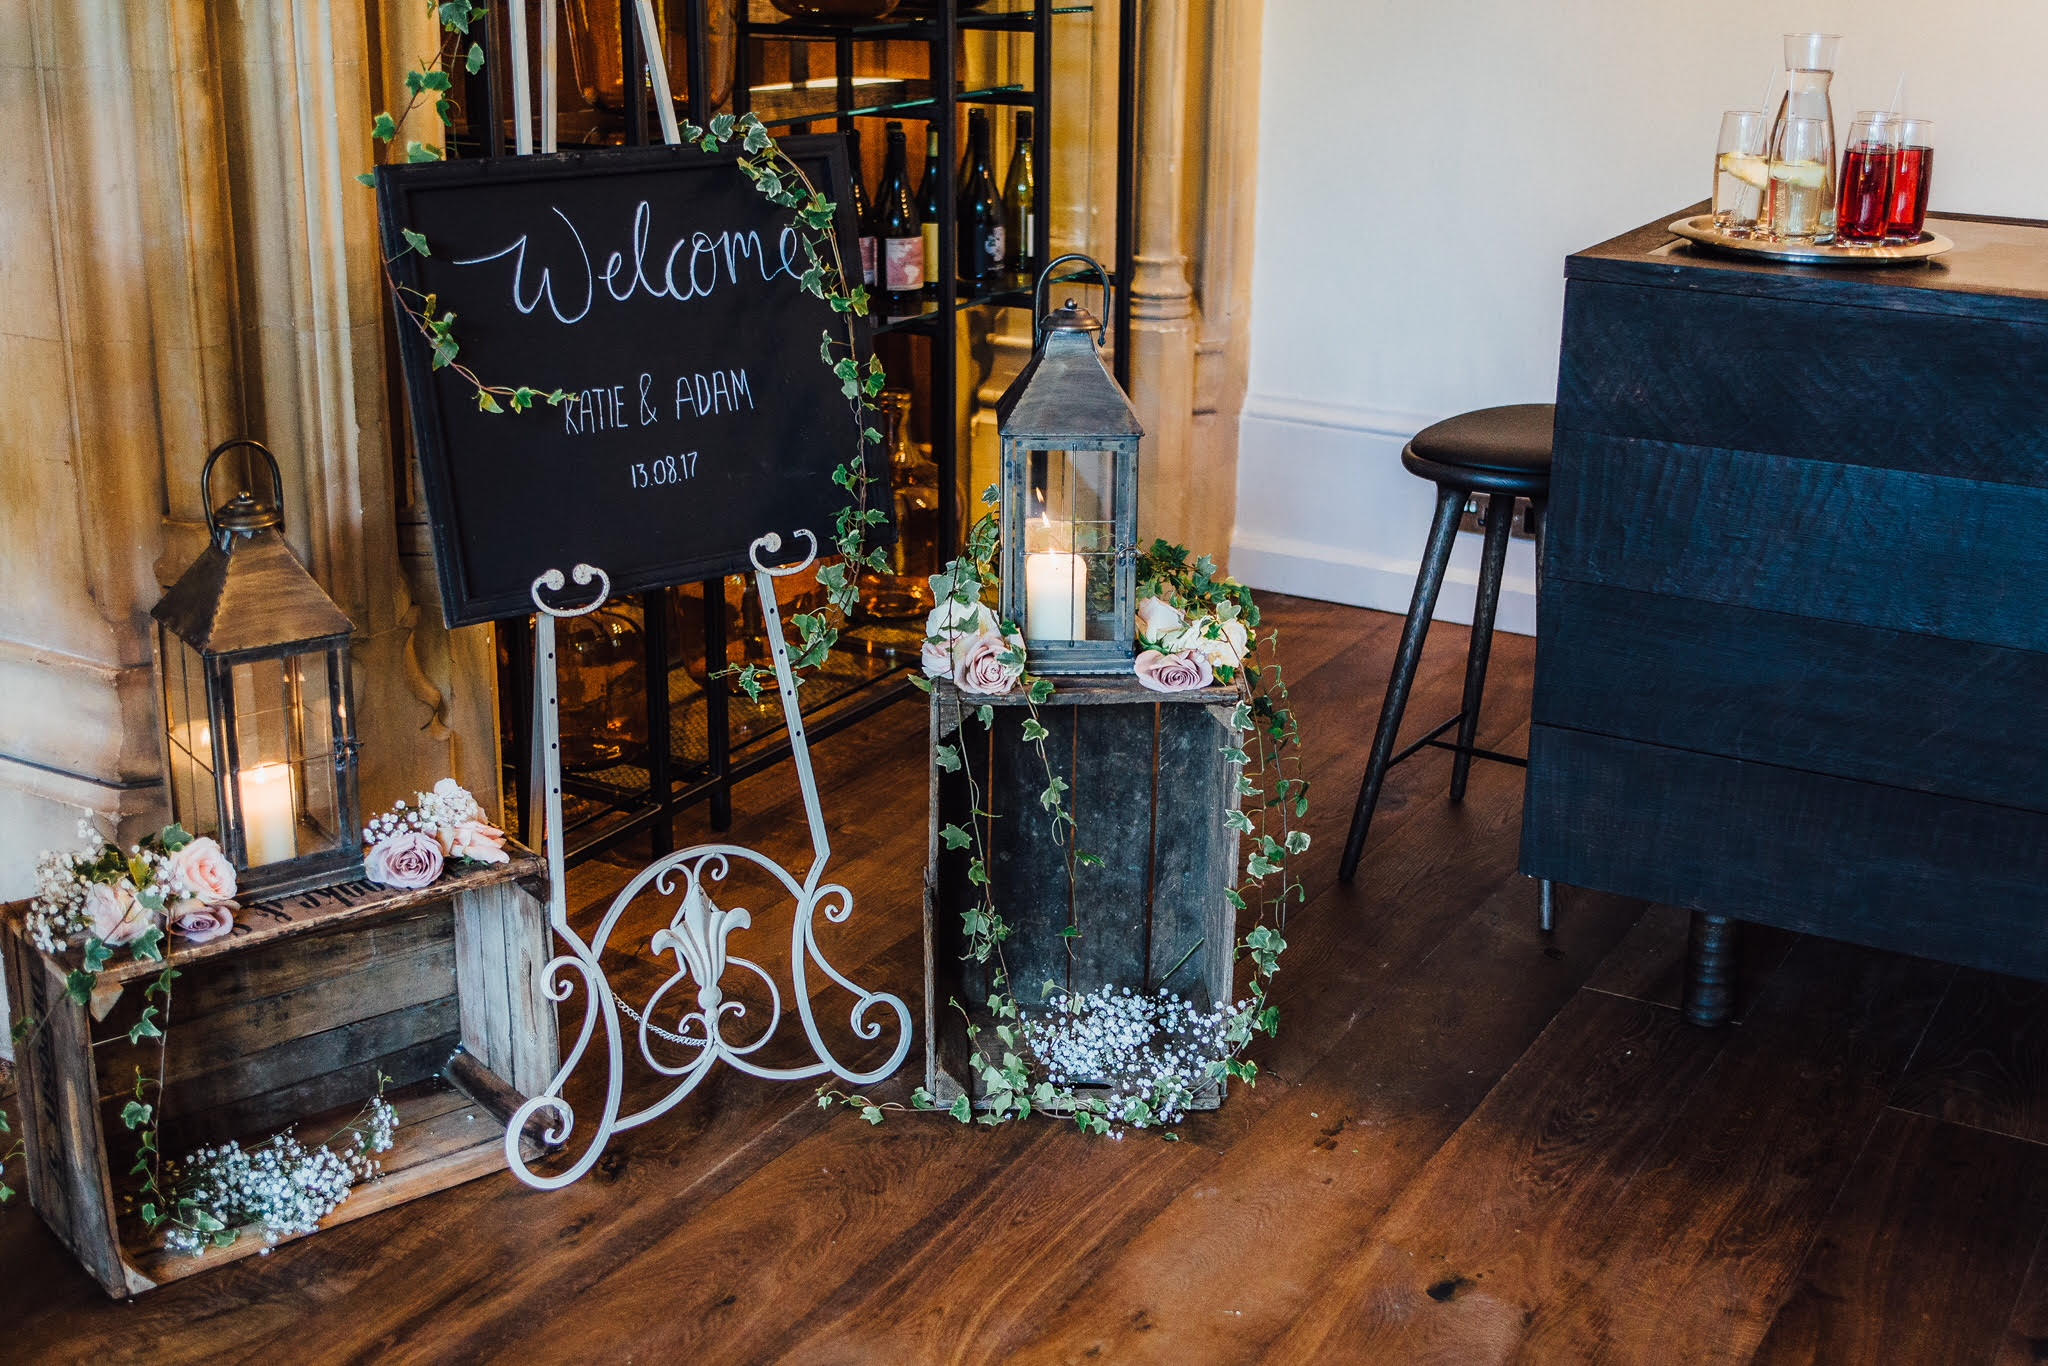 Manor house wedding flowers passion for flowers for Blackboard hampton